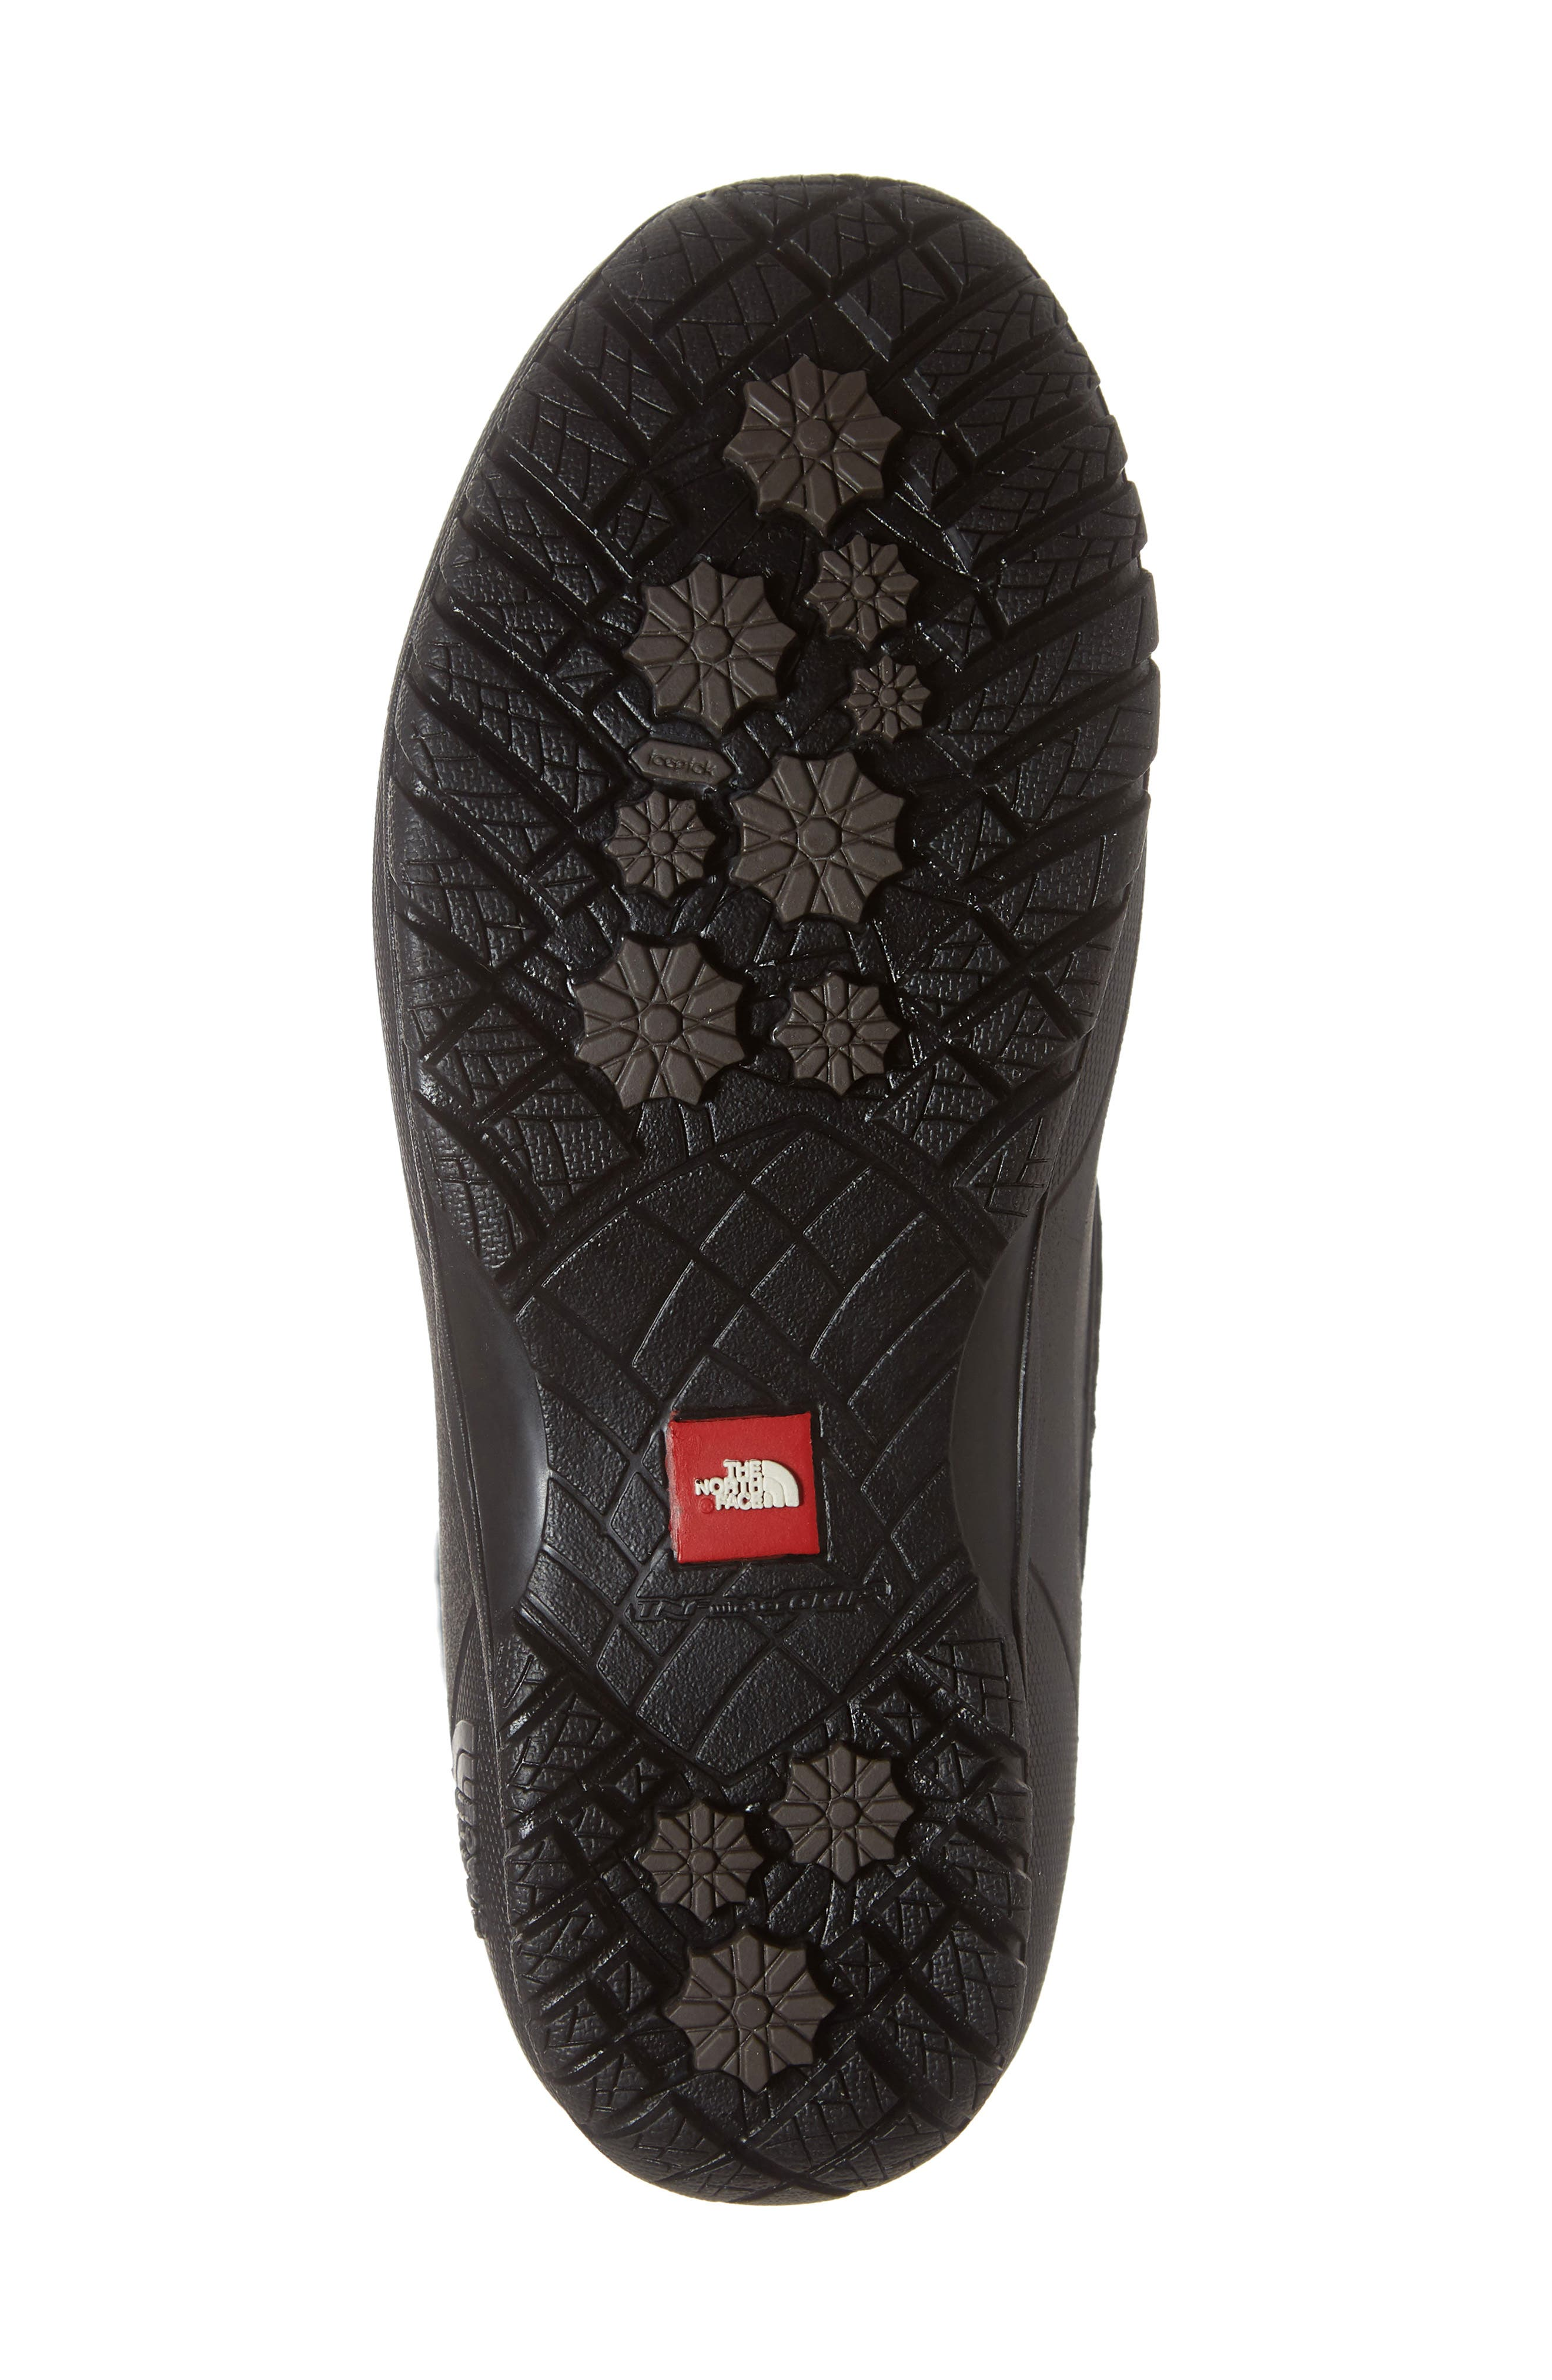 THE NORTH FACE,                             Shellista Waterproof Insulated Snow Boot,                             Alternate thumbnail 6, color,                             003